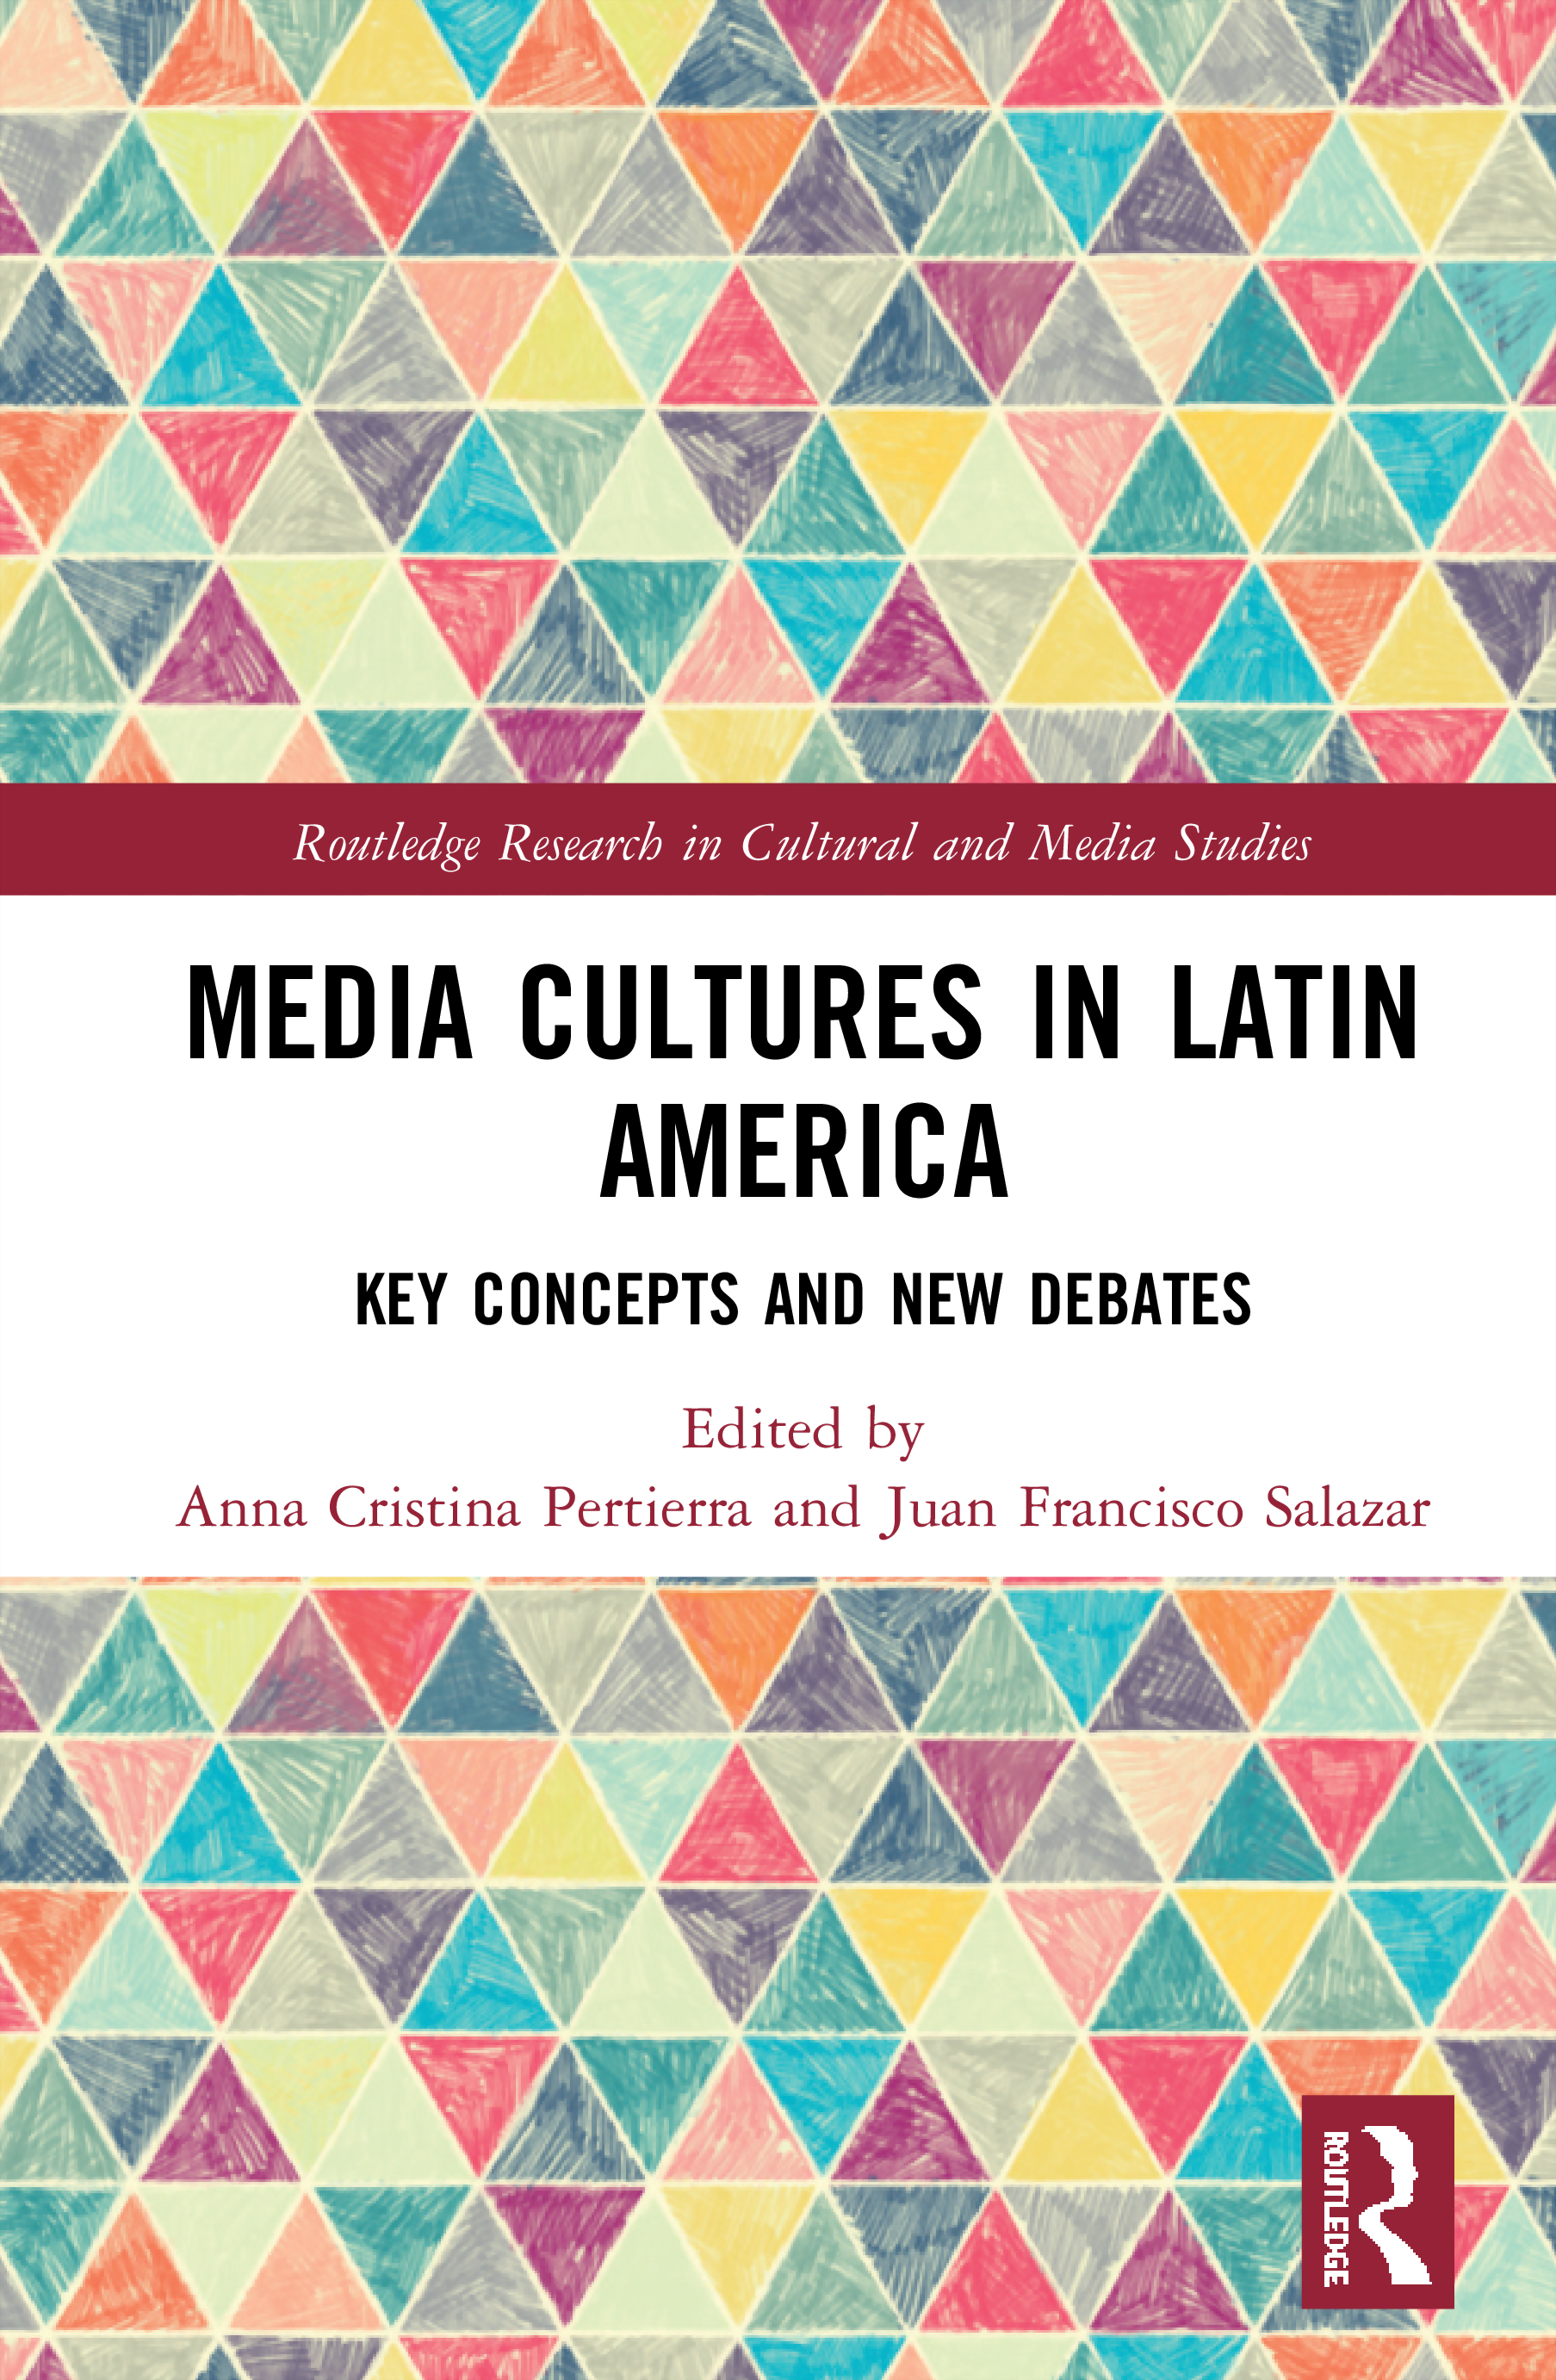 Media Cultures in Latin America: Key Concepts and New Debates book cover